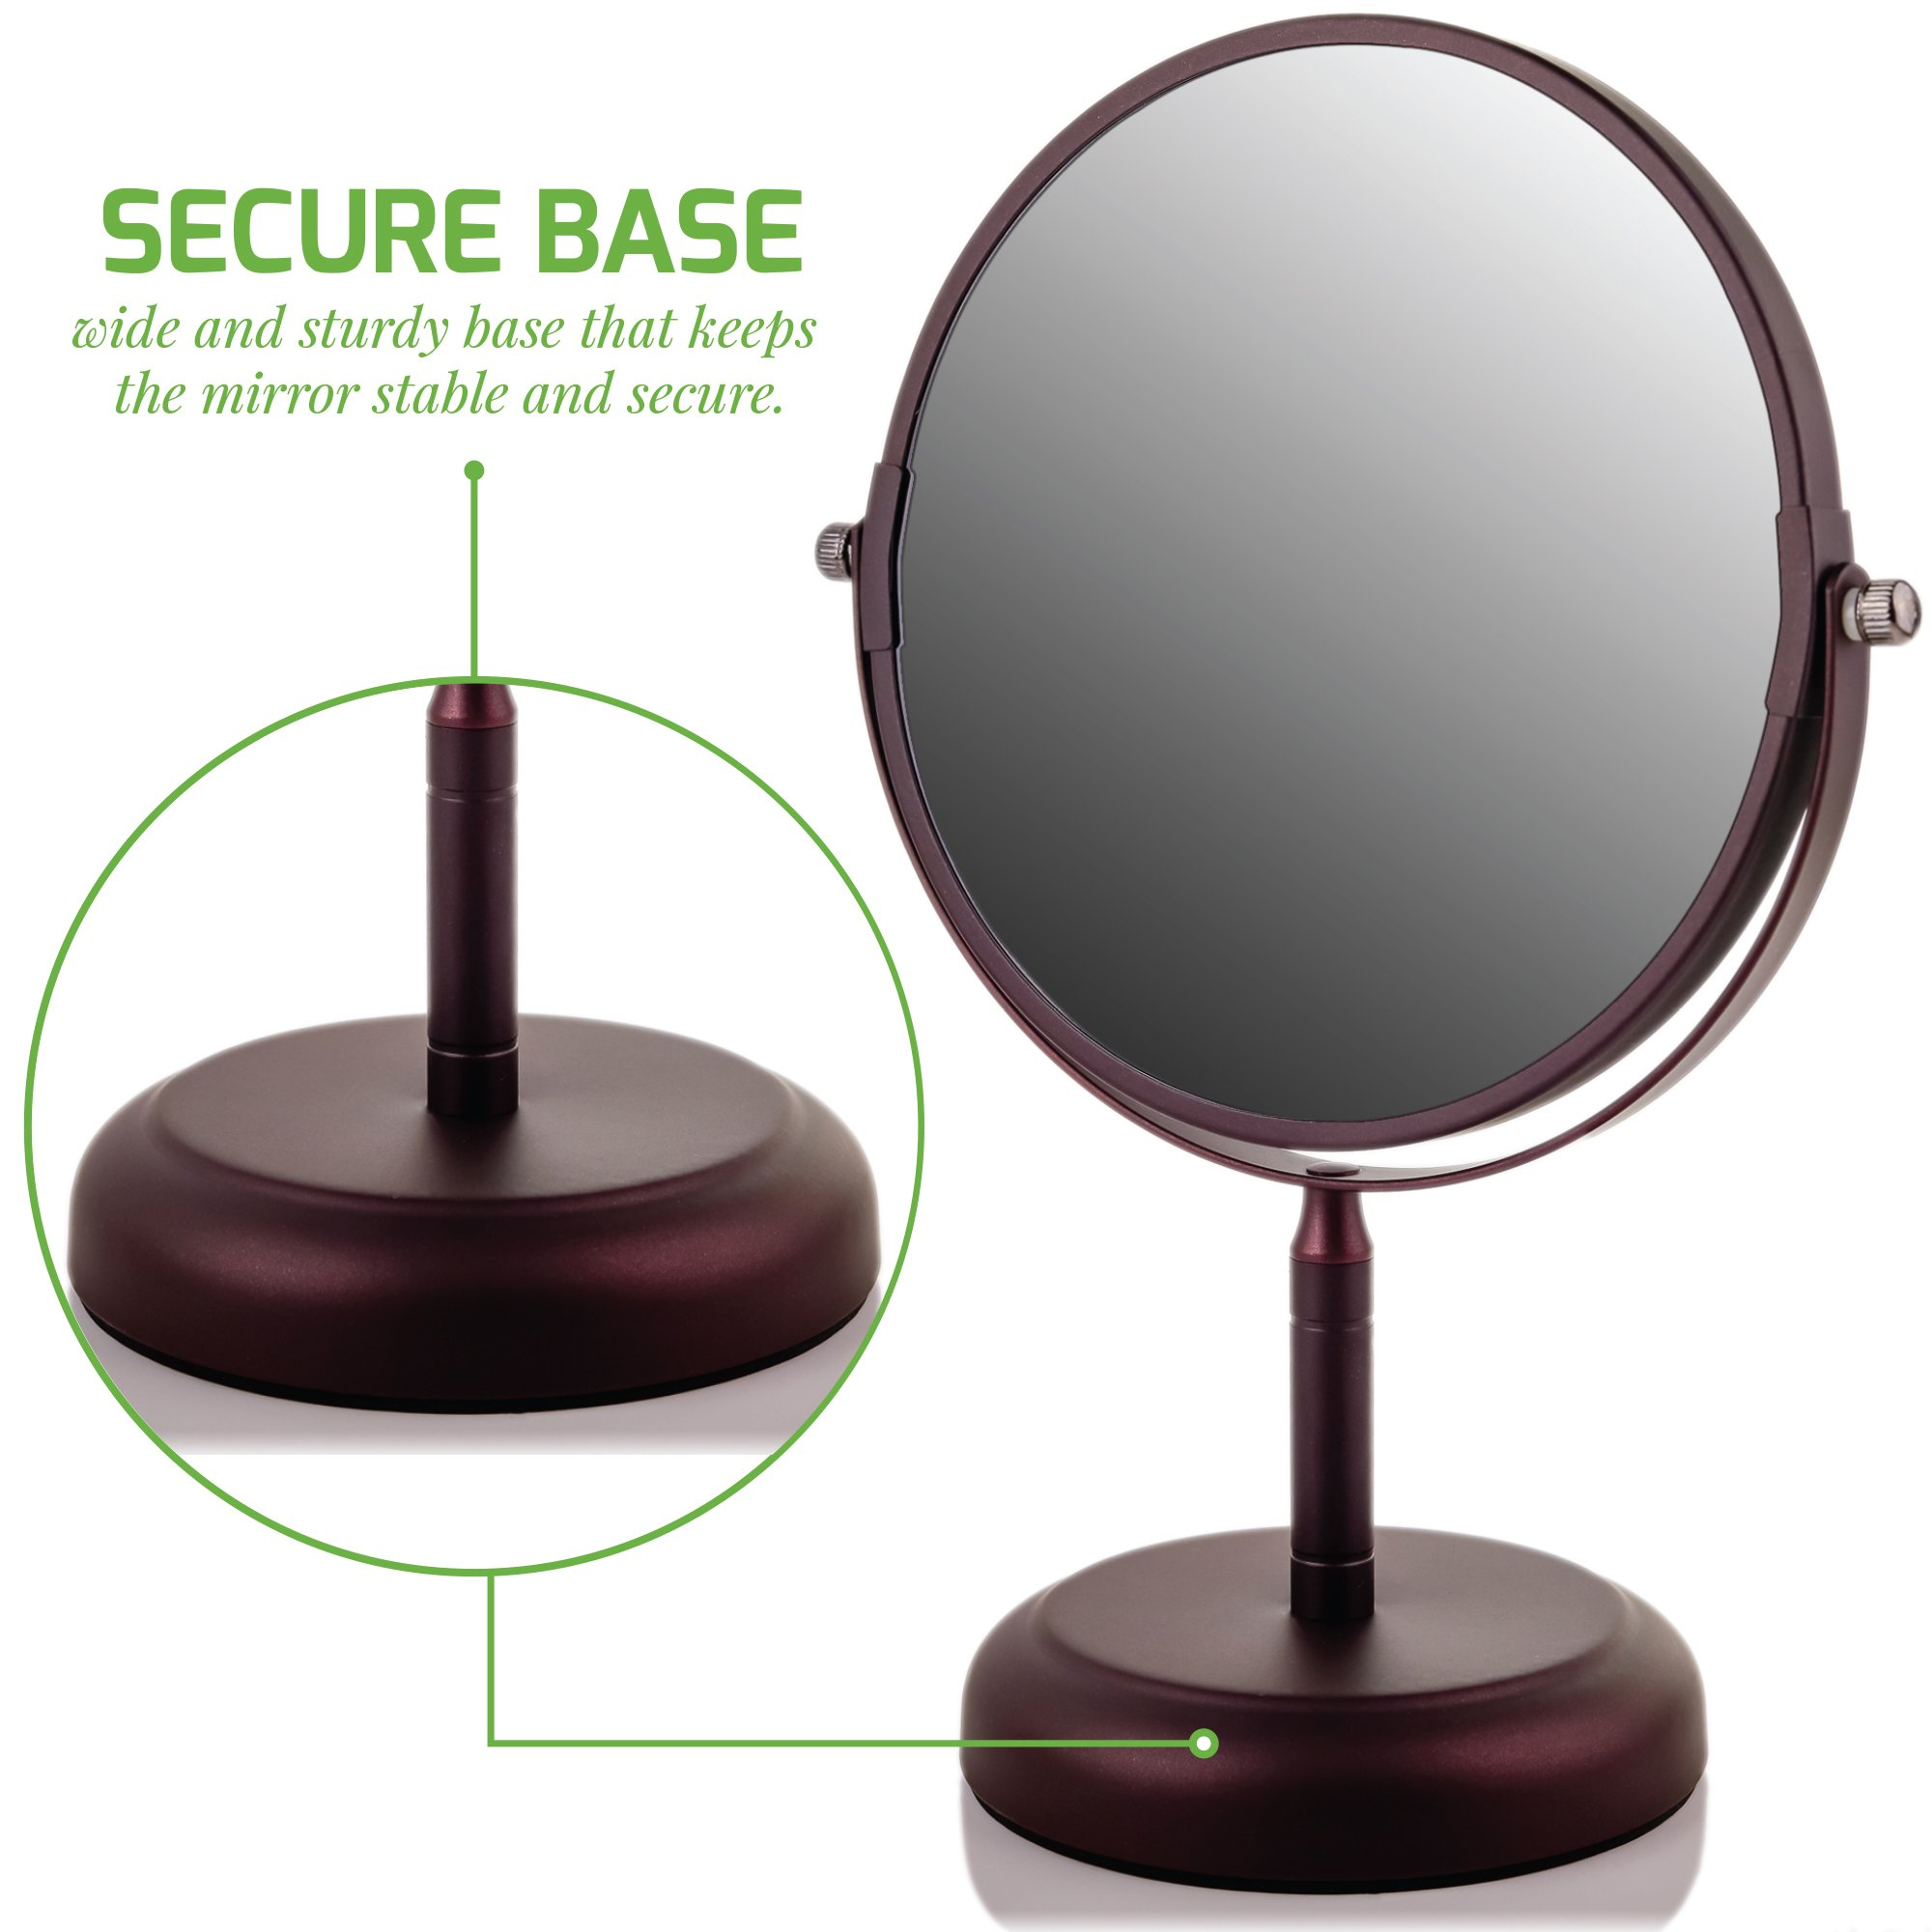 Ovente Round Tabletop Vanity Mirror, 7 Inch, Dual-Sided with 1x/5x magnification, Antique Bronze (MNLDT70ABZ1X5X) by Ovente (Image #7)